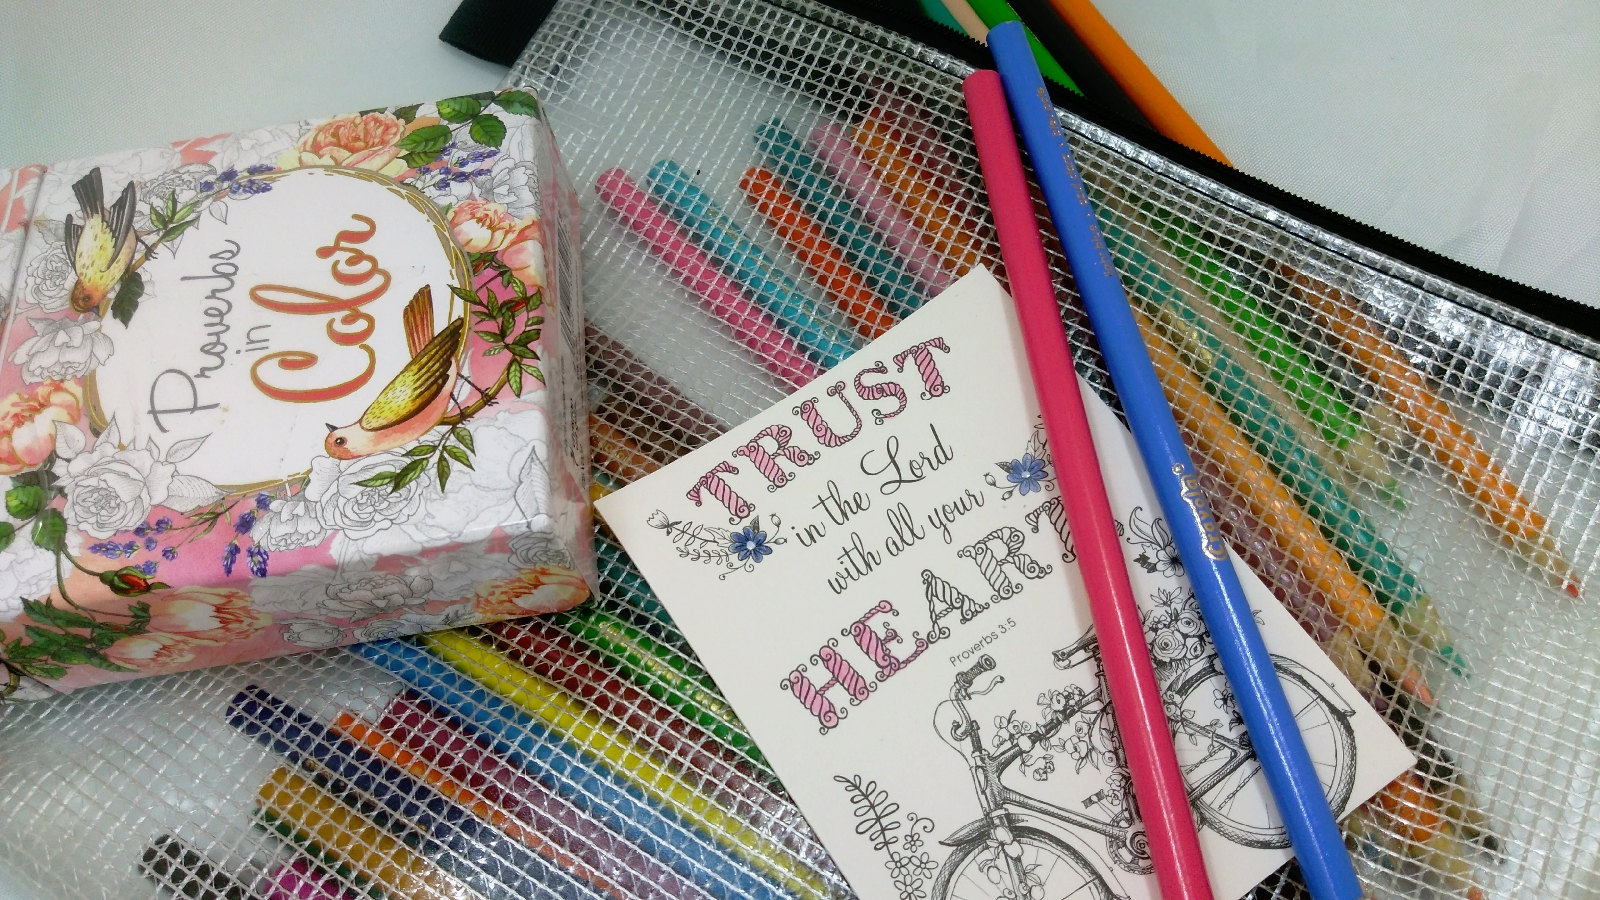 Adult coloring bag for a portable self-care kit